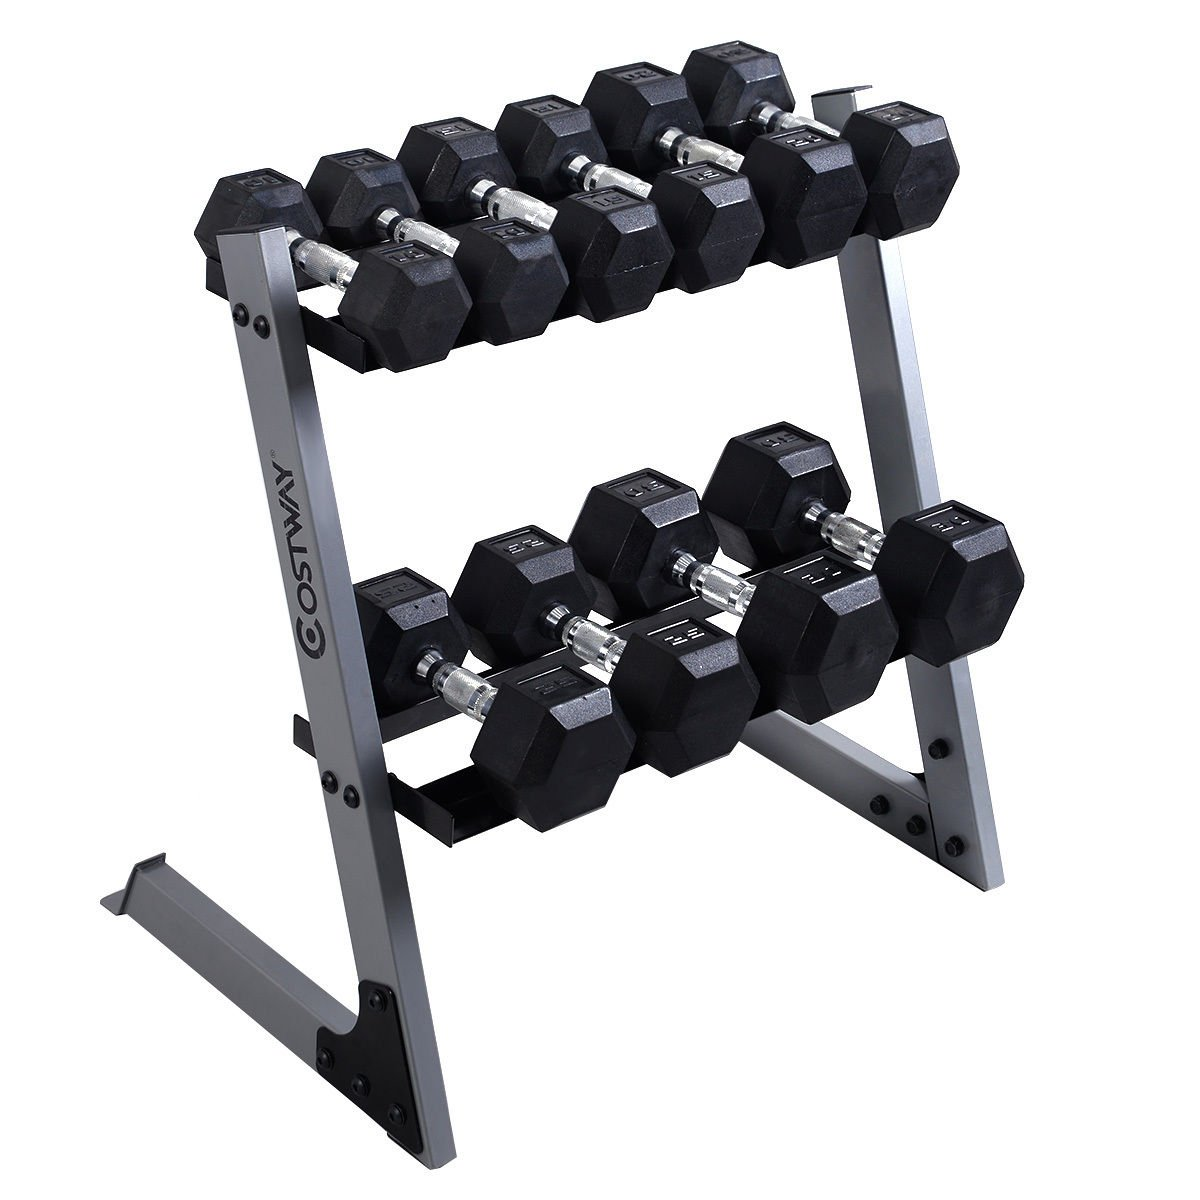 Giantex Dumbbell Weight Storage Rack Stand Home Gym Bench Base W/10 15 20 25 30lb Plates